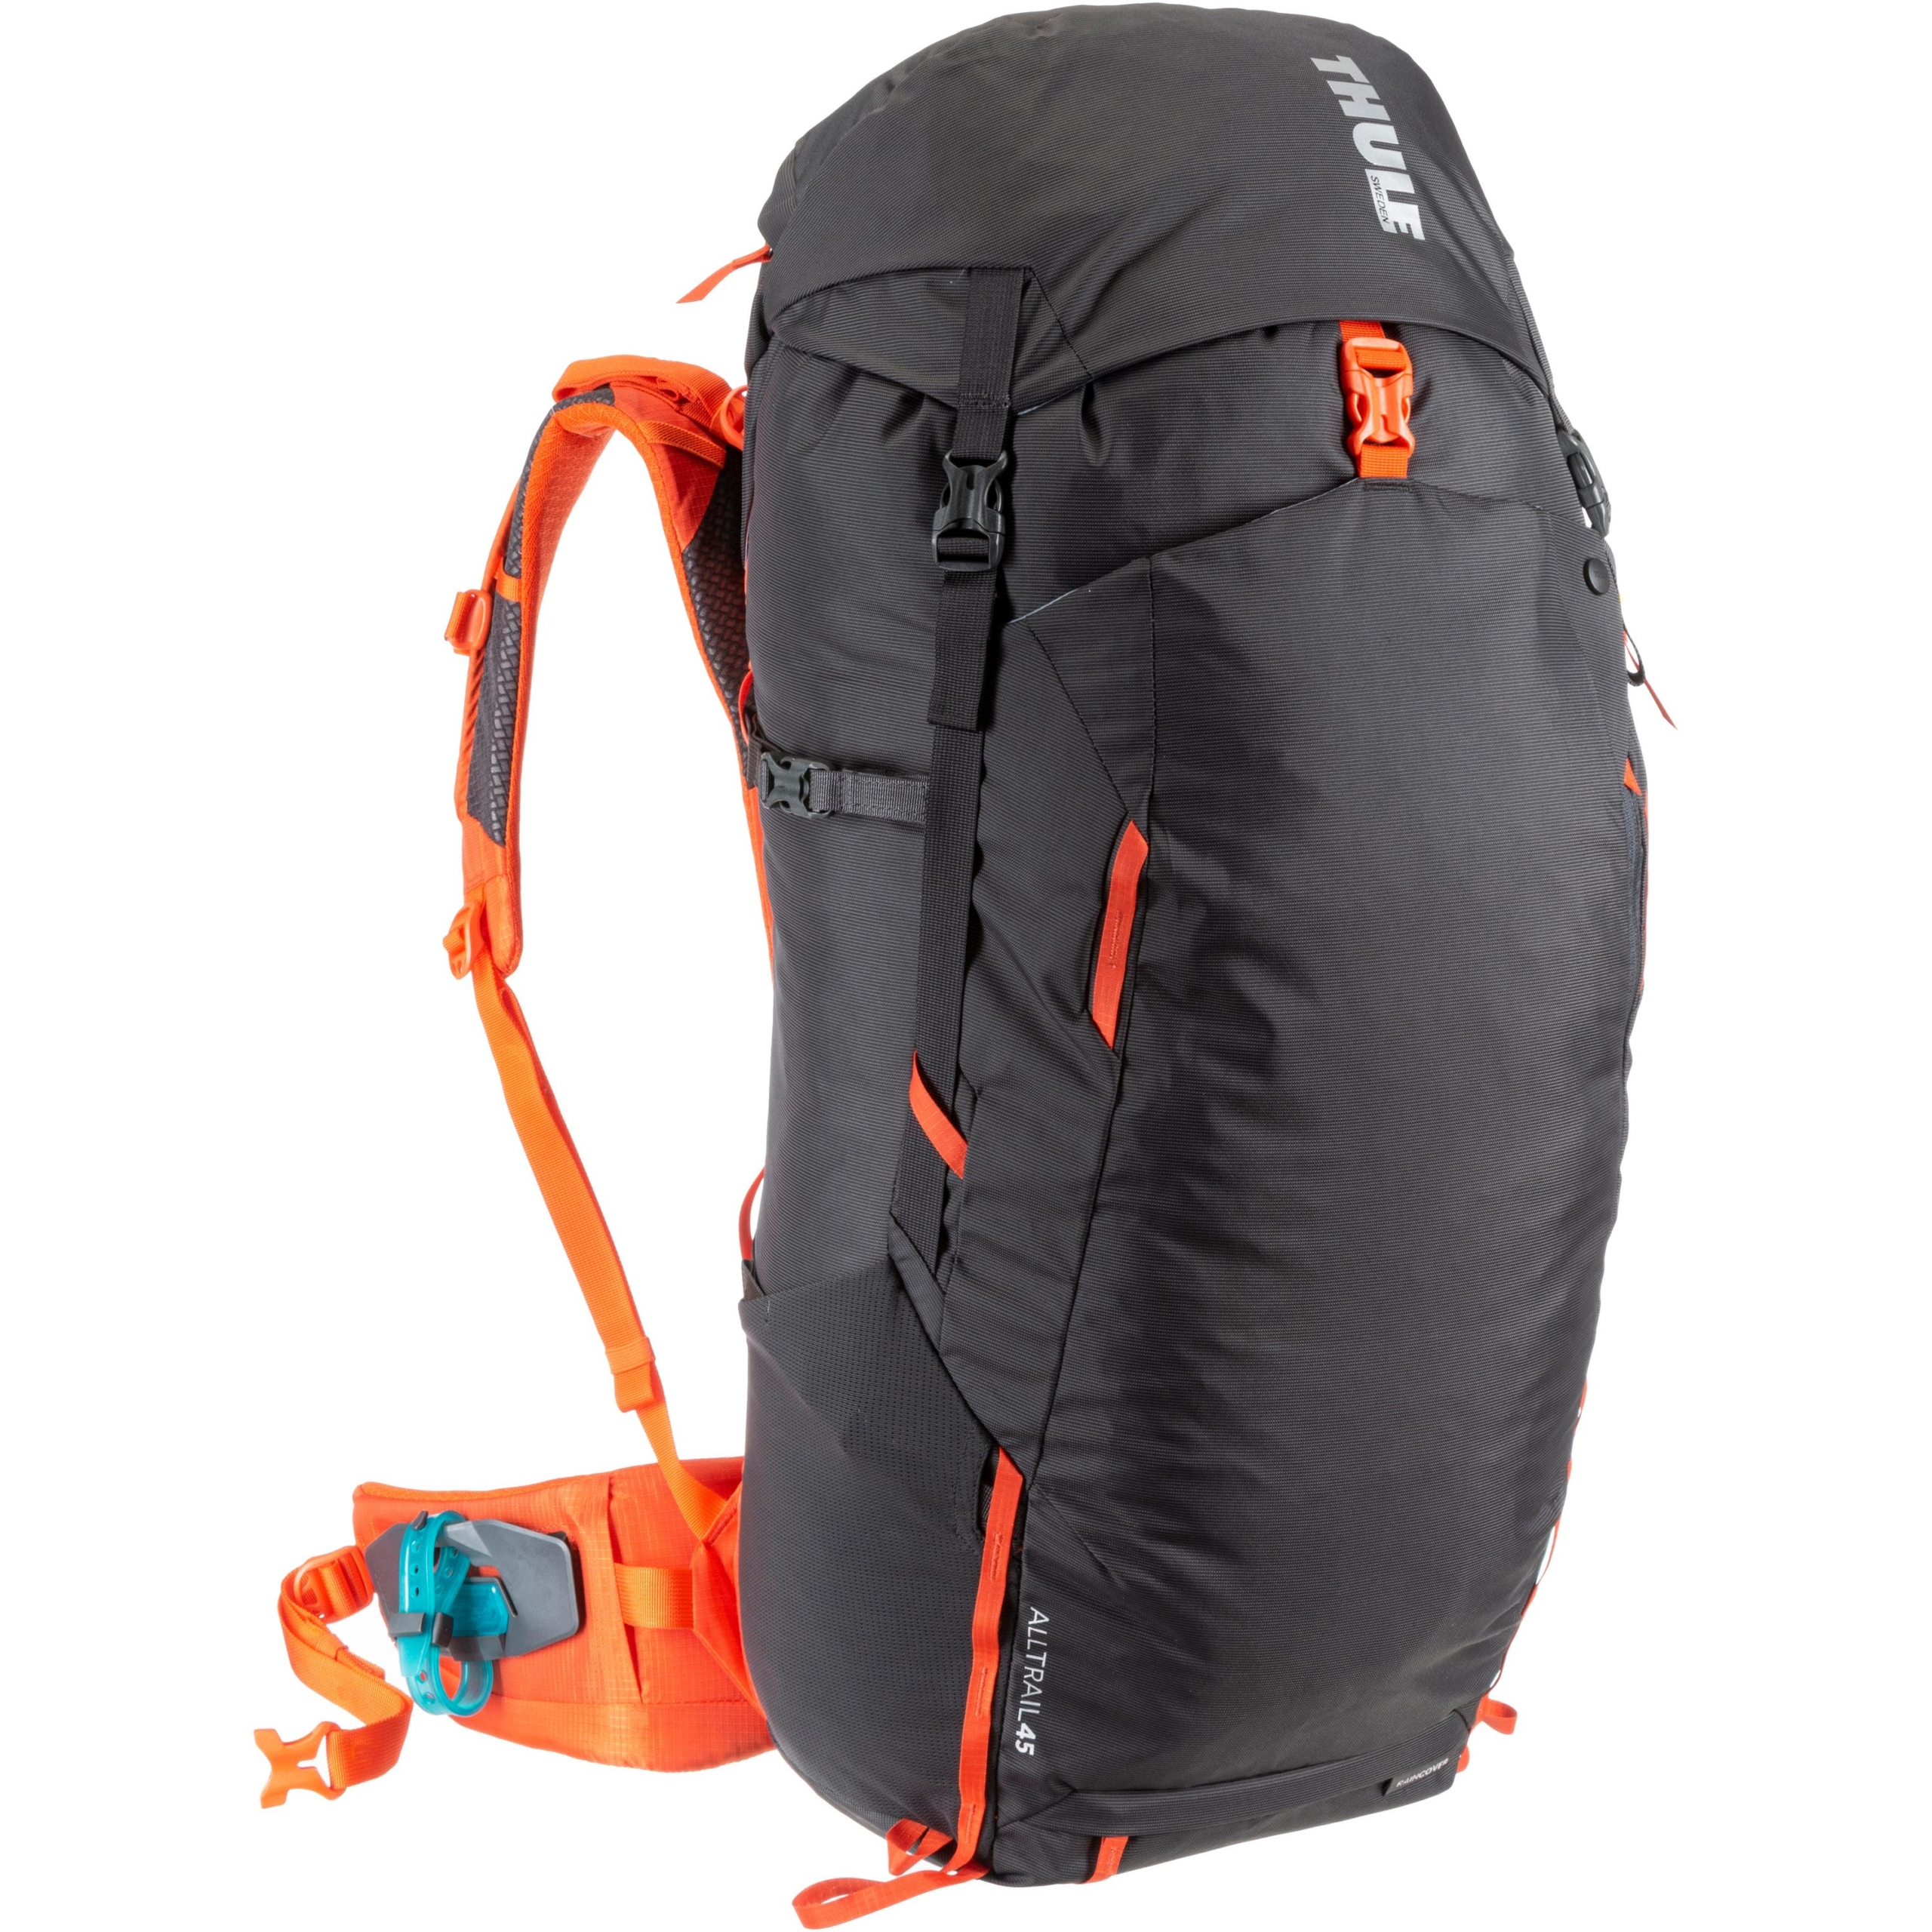 Thule All Trail Wanderrucksack